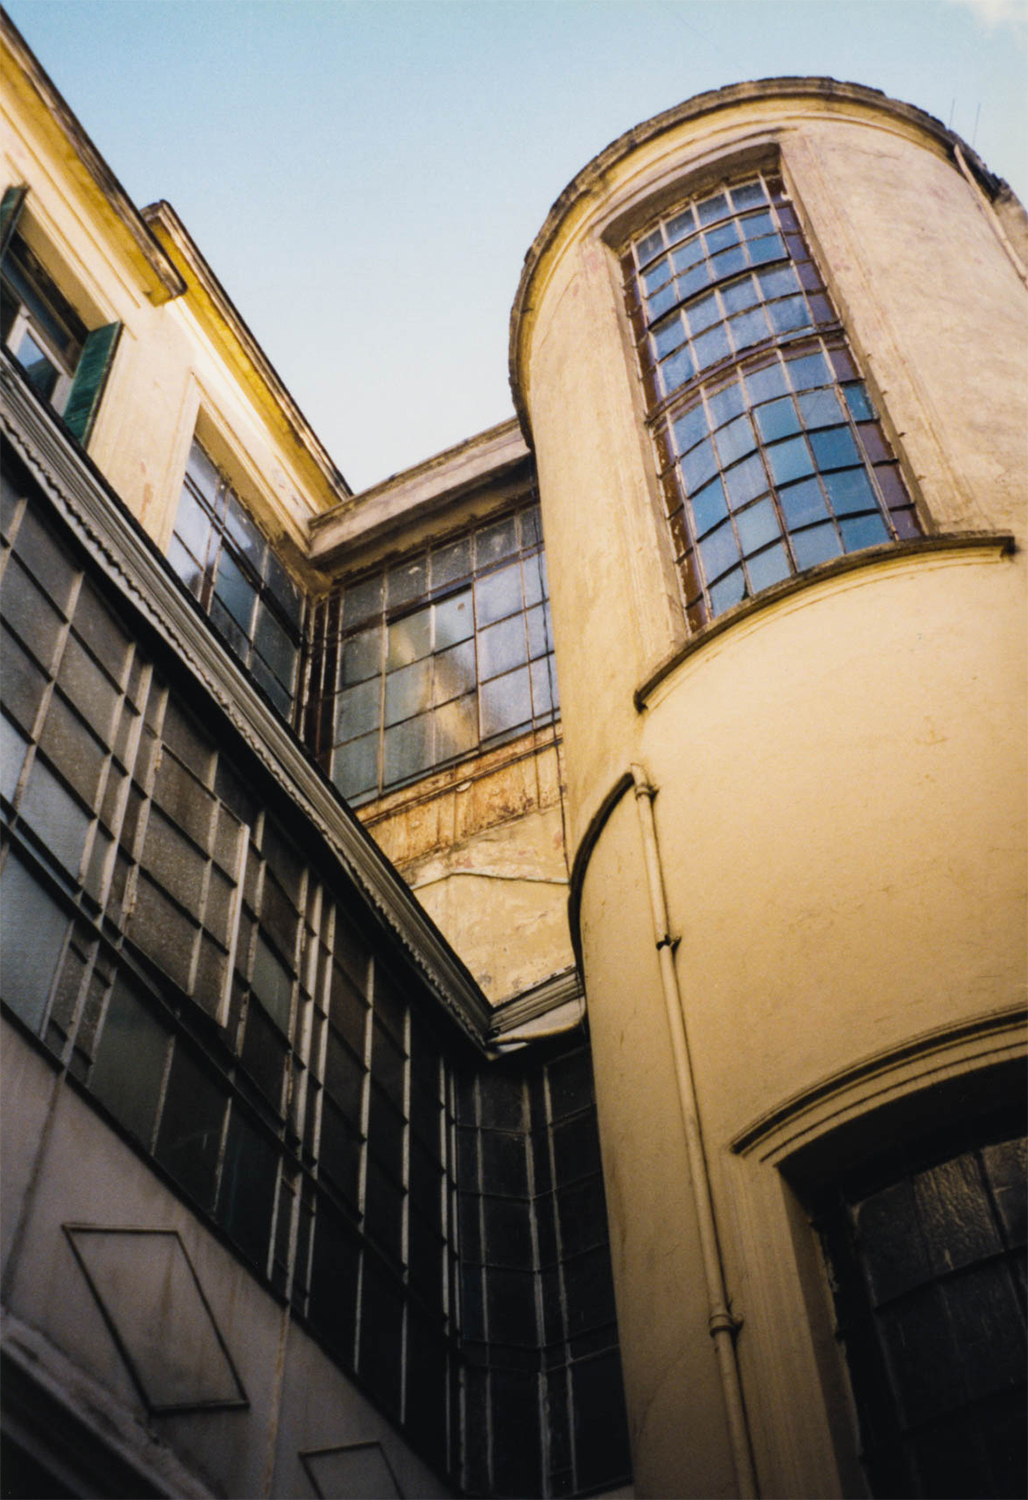 <p>The stairwell as seen from the courtyard of this modest hotel in San Telmo. It was my temporary home when I moved to Buenos Aires in 1997 and started my search for a flat. I love this picture.</p>